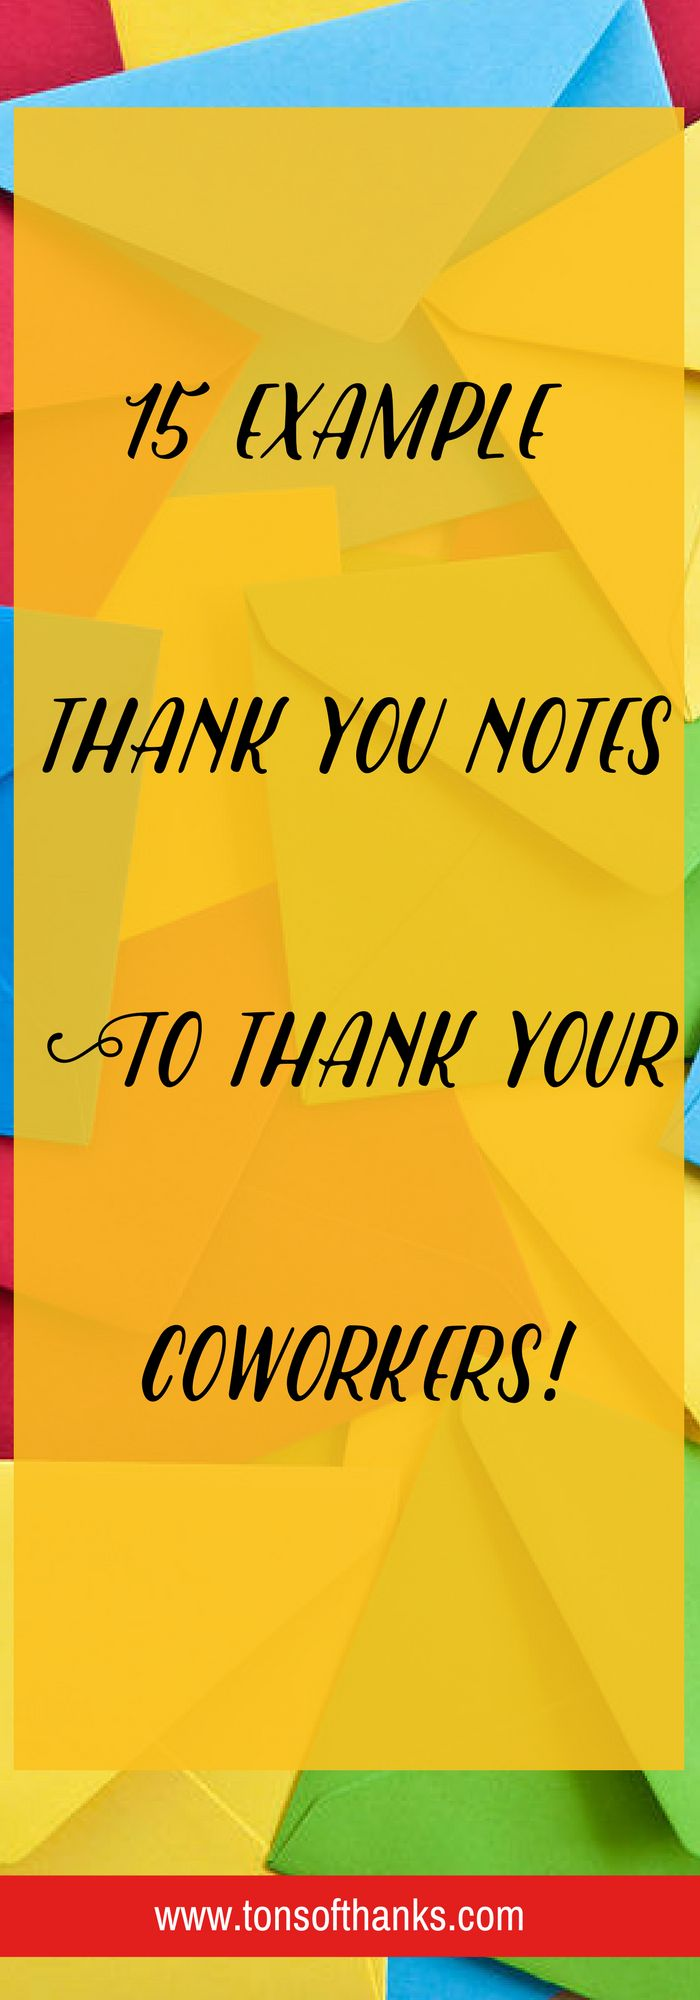 Example Thank You Notes